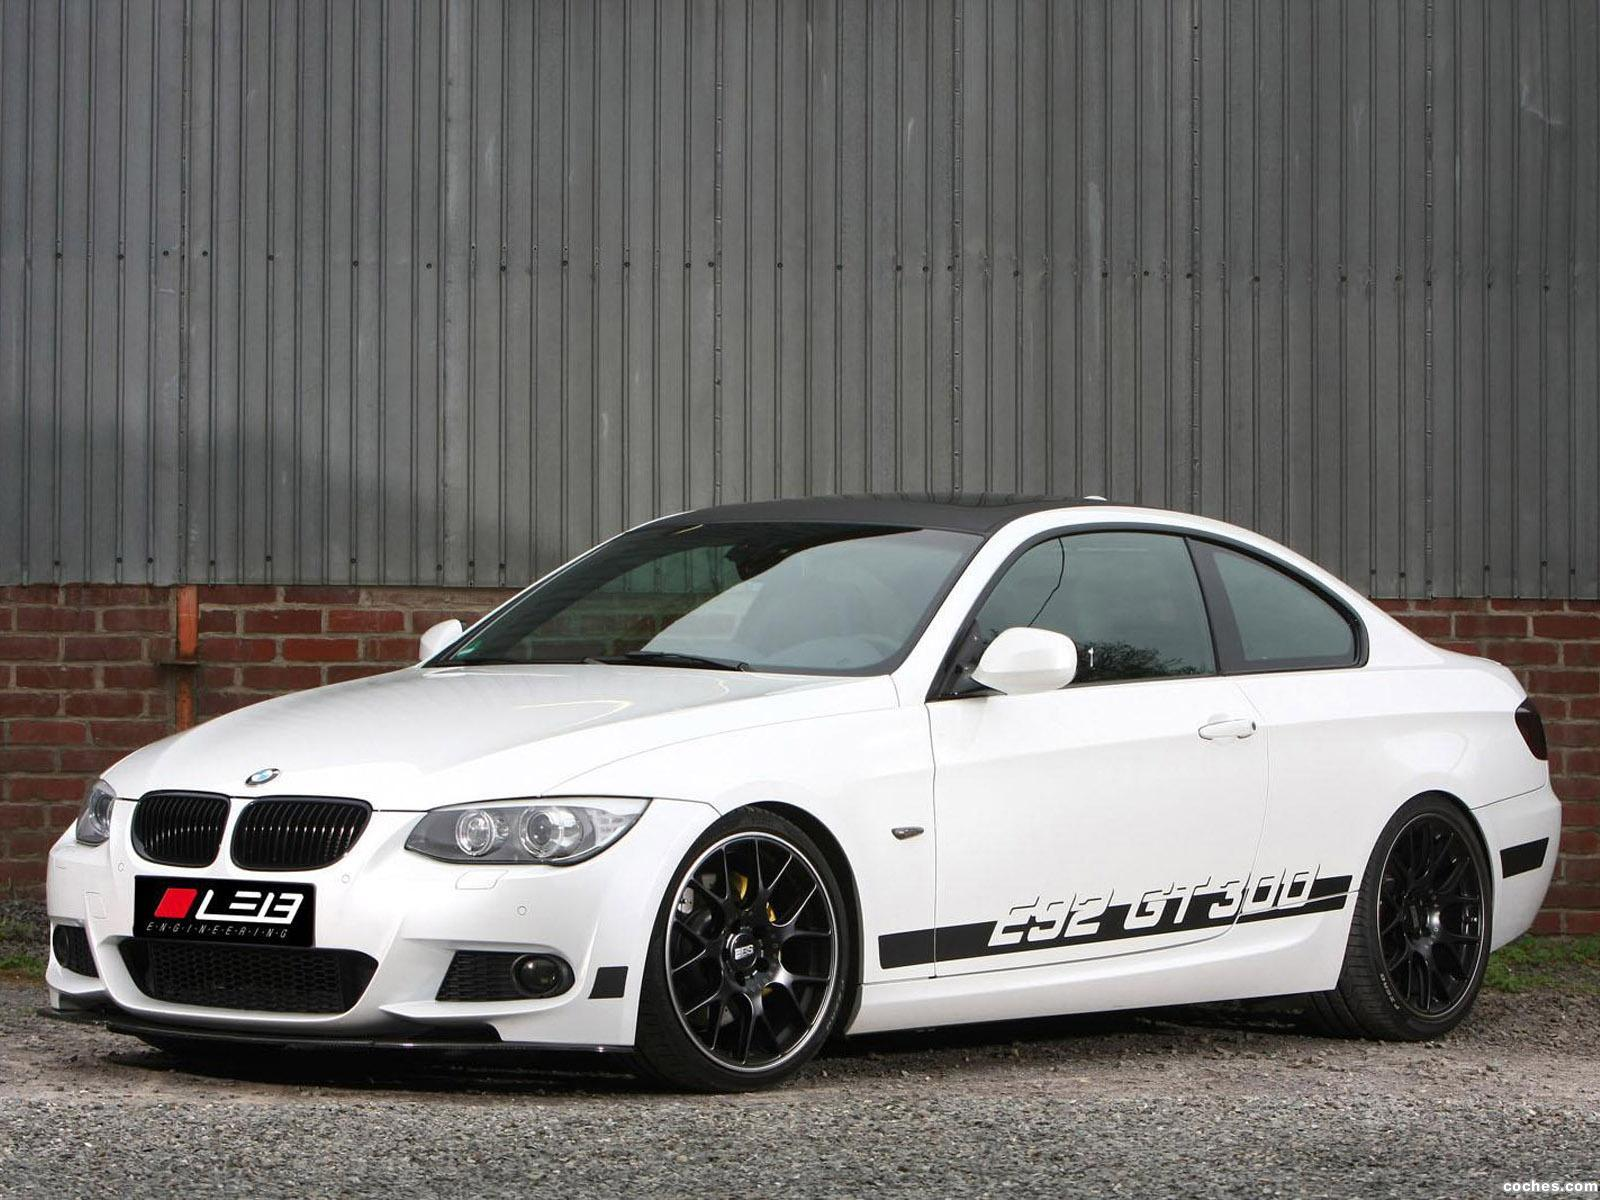 Foto 0 de BMW Serie 3 Leib Engineering GT 300 E92 2013